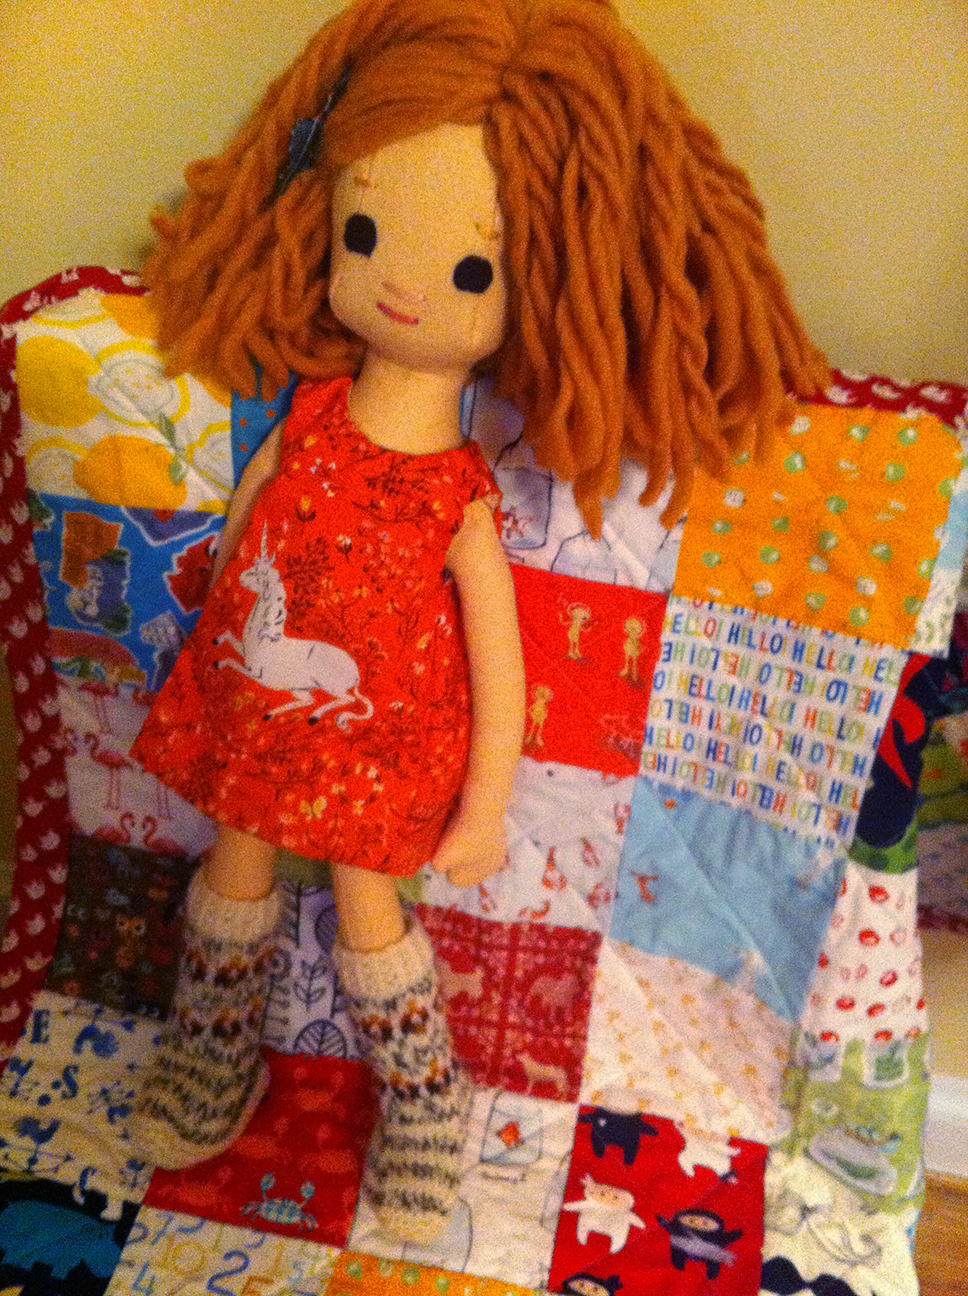 Phoebe models handmade boots, quilt and a unicorn dress.